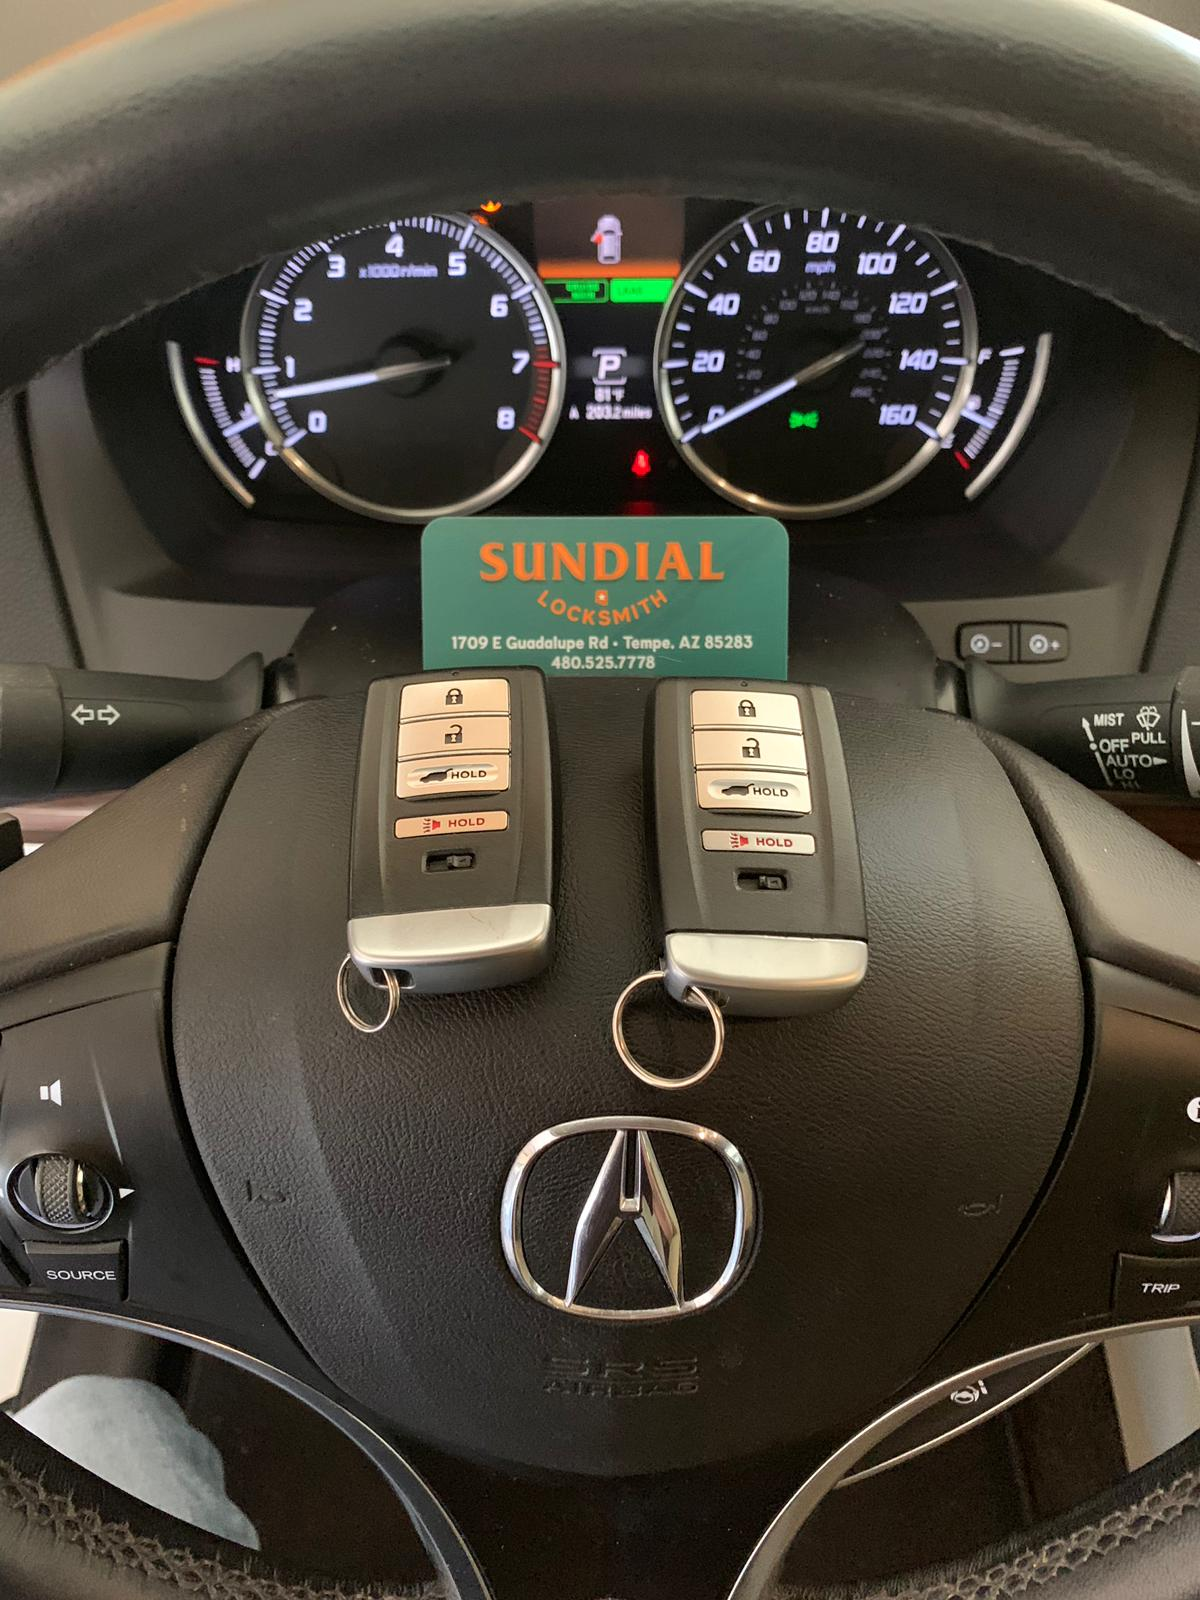 Smart Proxy Keyless Entry Remote Key Fob for Acura brand new OEM with emergency insert key. You must take it to a car locksmith for programming and cutting.